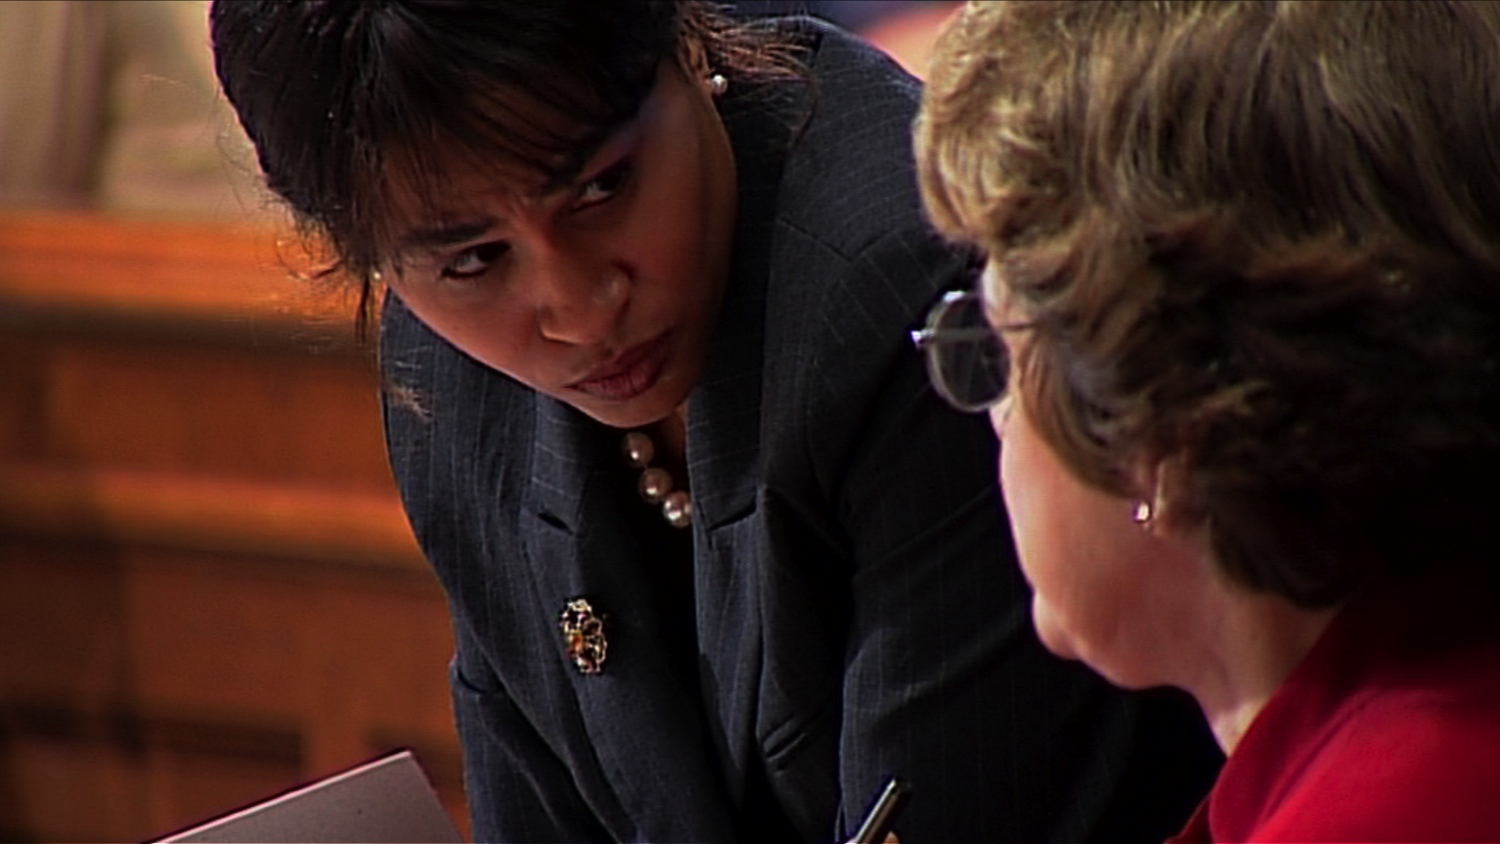 06_DREAM_HD_STILL_Hearing Room_Lavita-Feinstein 01.jpg